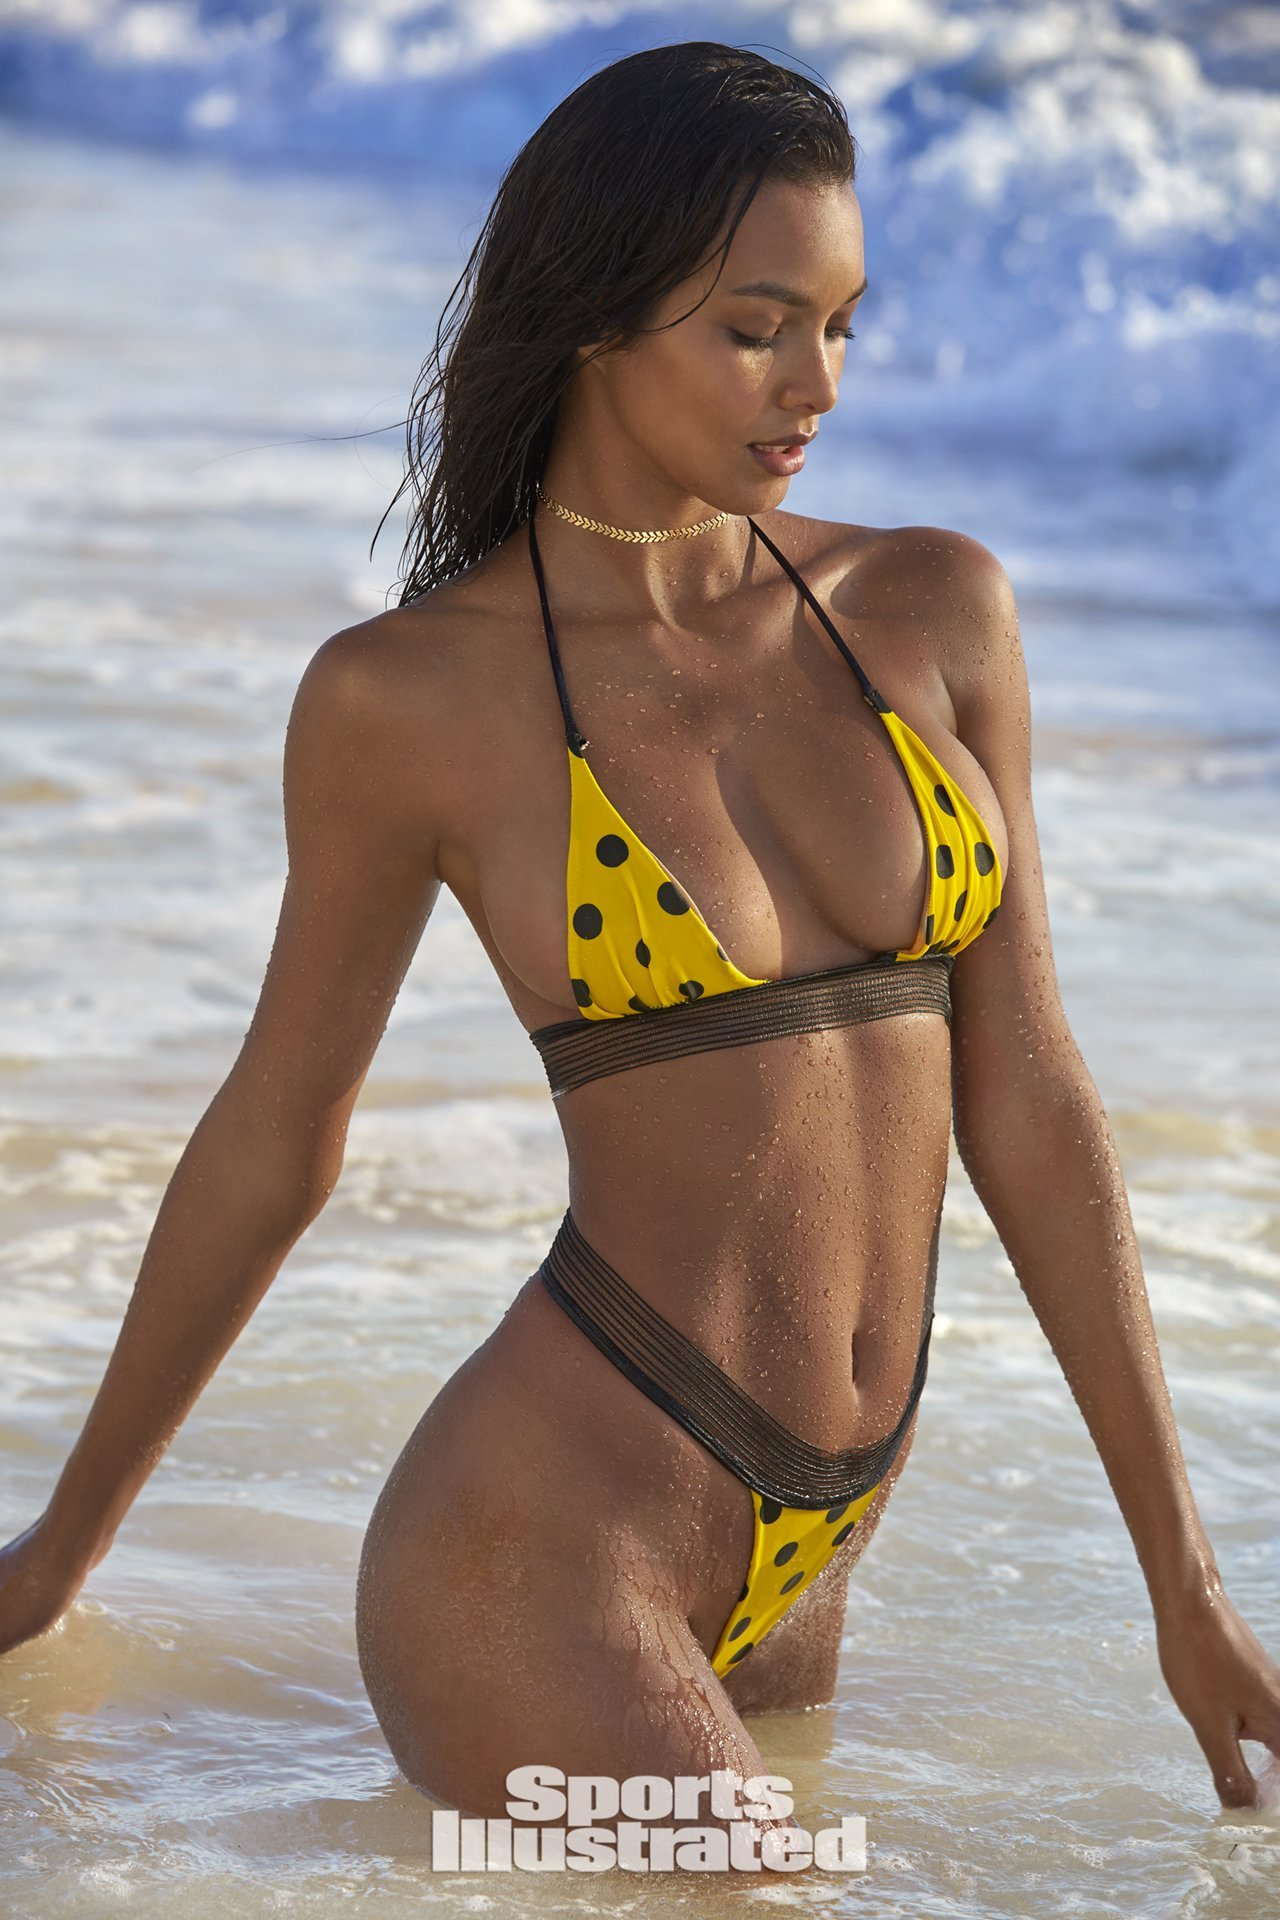 Lais Ribeiro - Sports Illustrated Swimsuit Issue 2018